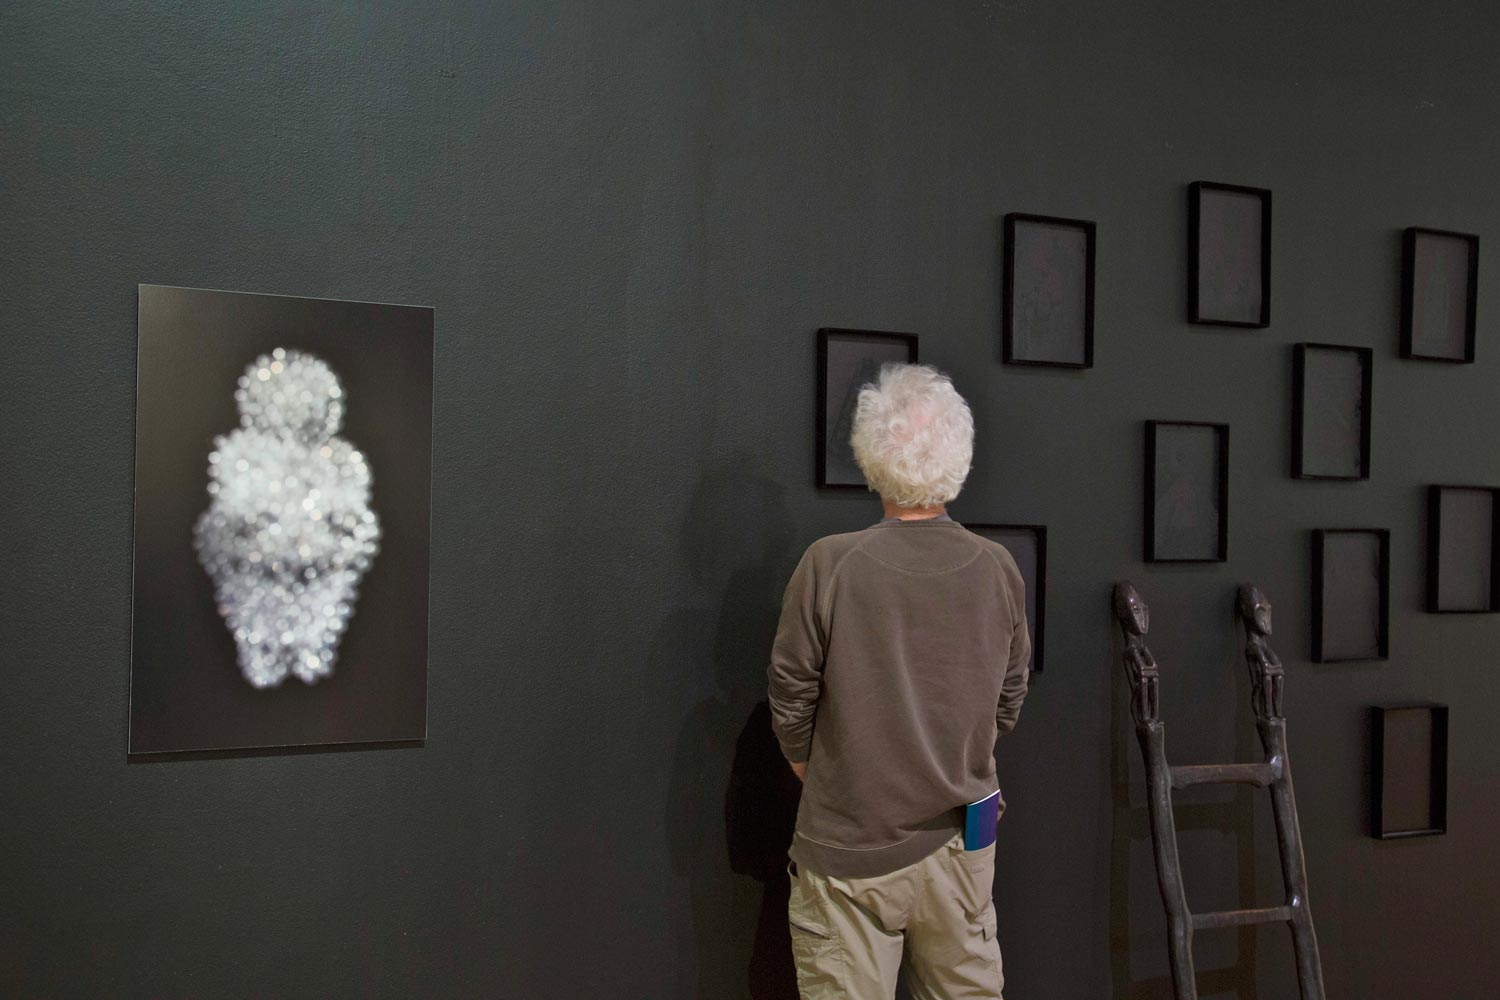 Installation view of the exhibit with the Venus of Willendorf. (Photo by © Mills Art Museum)